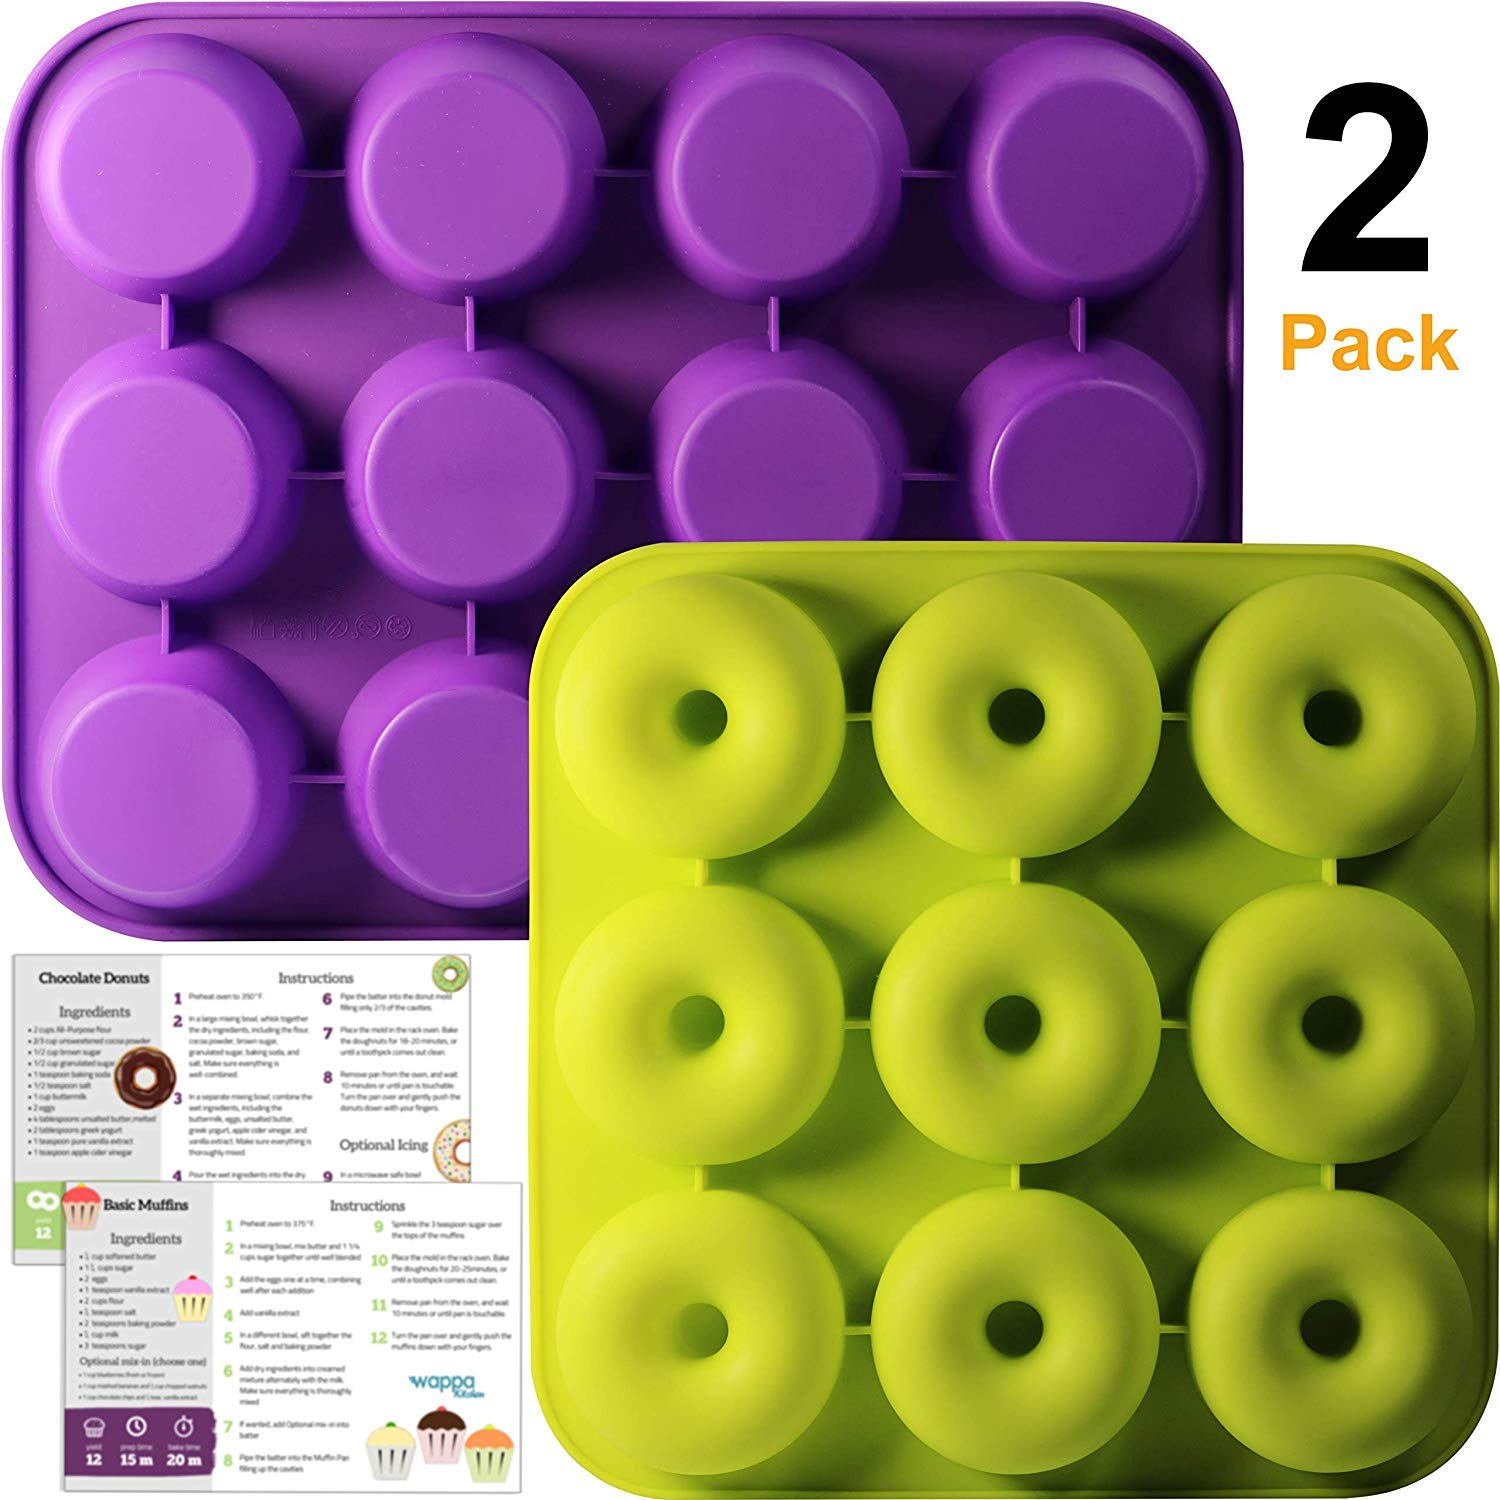 Wappa Kitchen Non Stick Donut Pan and Muffin Pan Bundle – Extremely Food Grade Silicone – FDA and European LFGB Approved – Includes Printed Recipes